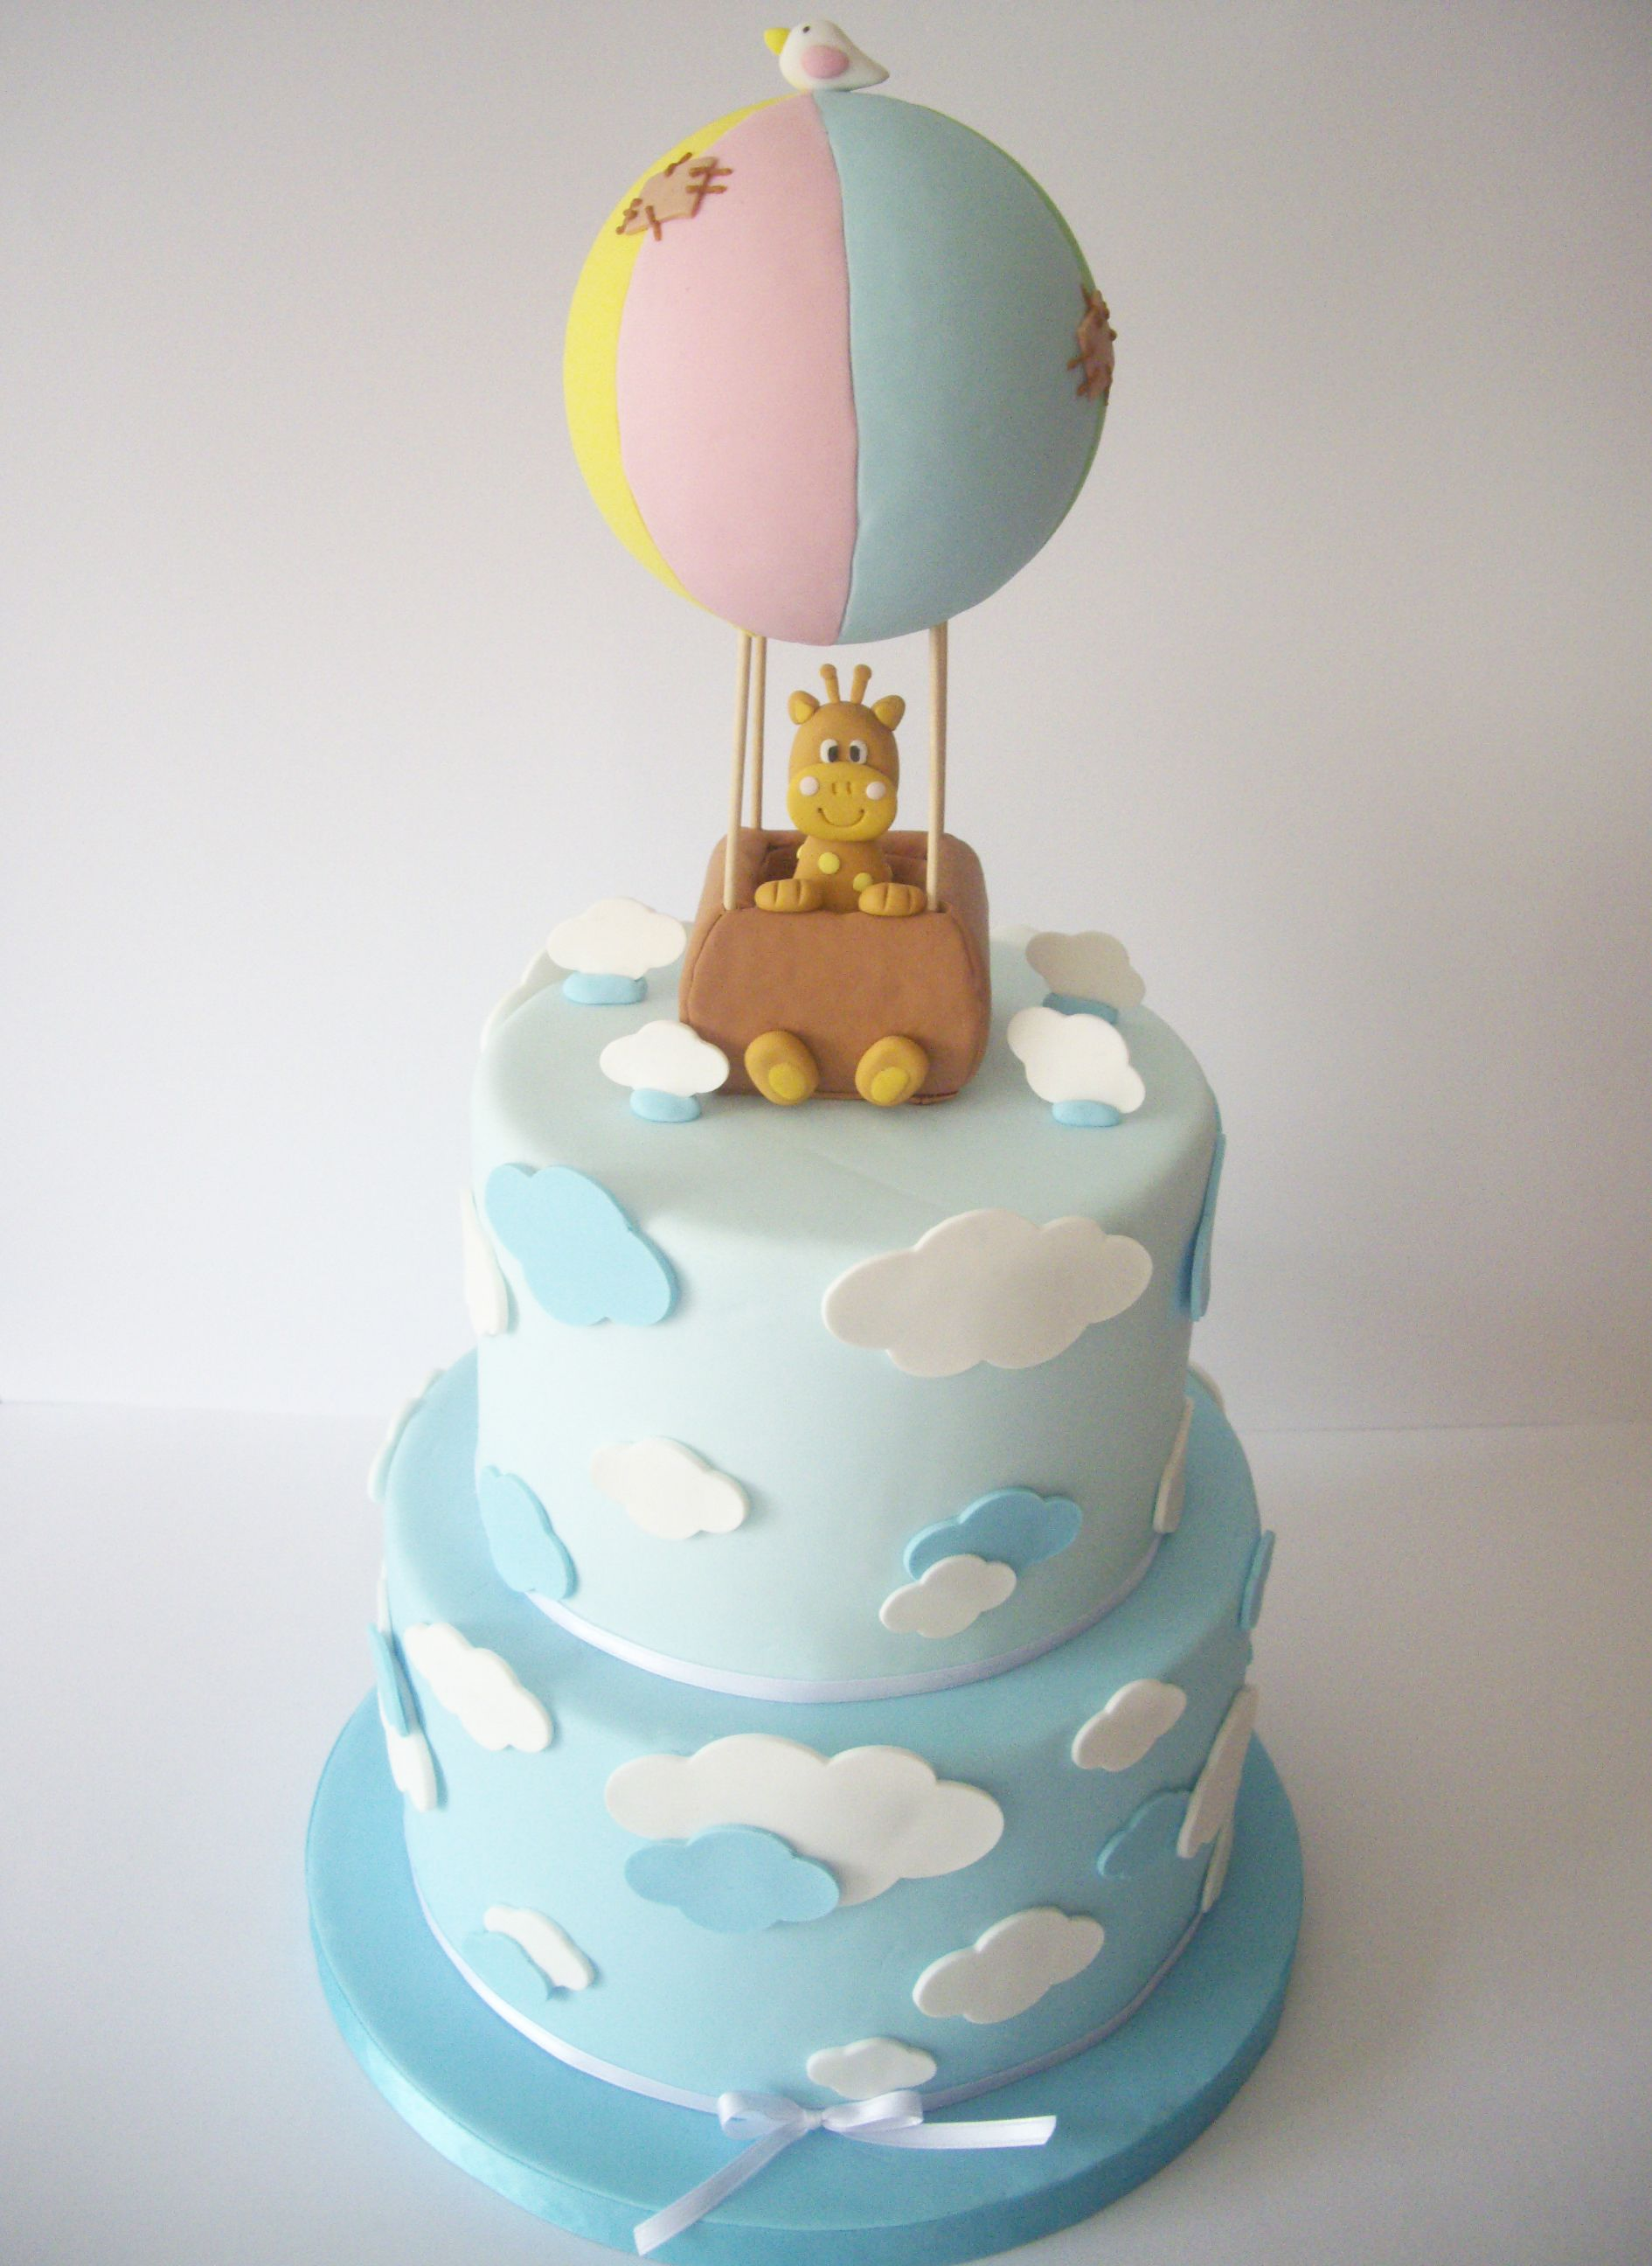 Cake Decorating Hot Air Balloon : My Giraffe in a Balloon Titi s Love Cake Pinterest ...